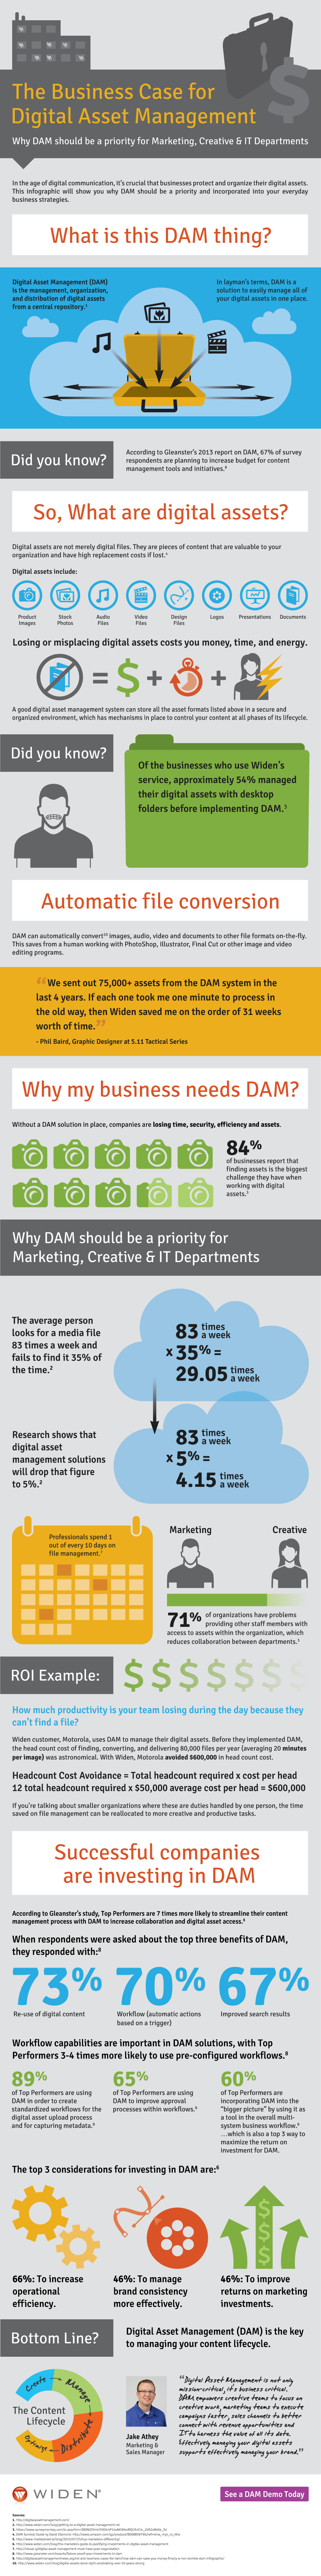 The-Business-Case-for-DAM-Infographic (1)